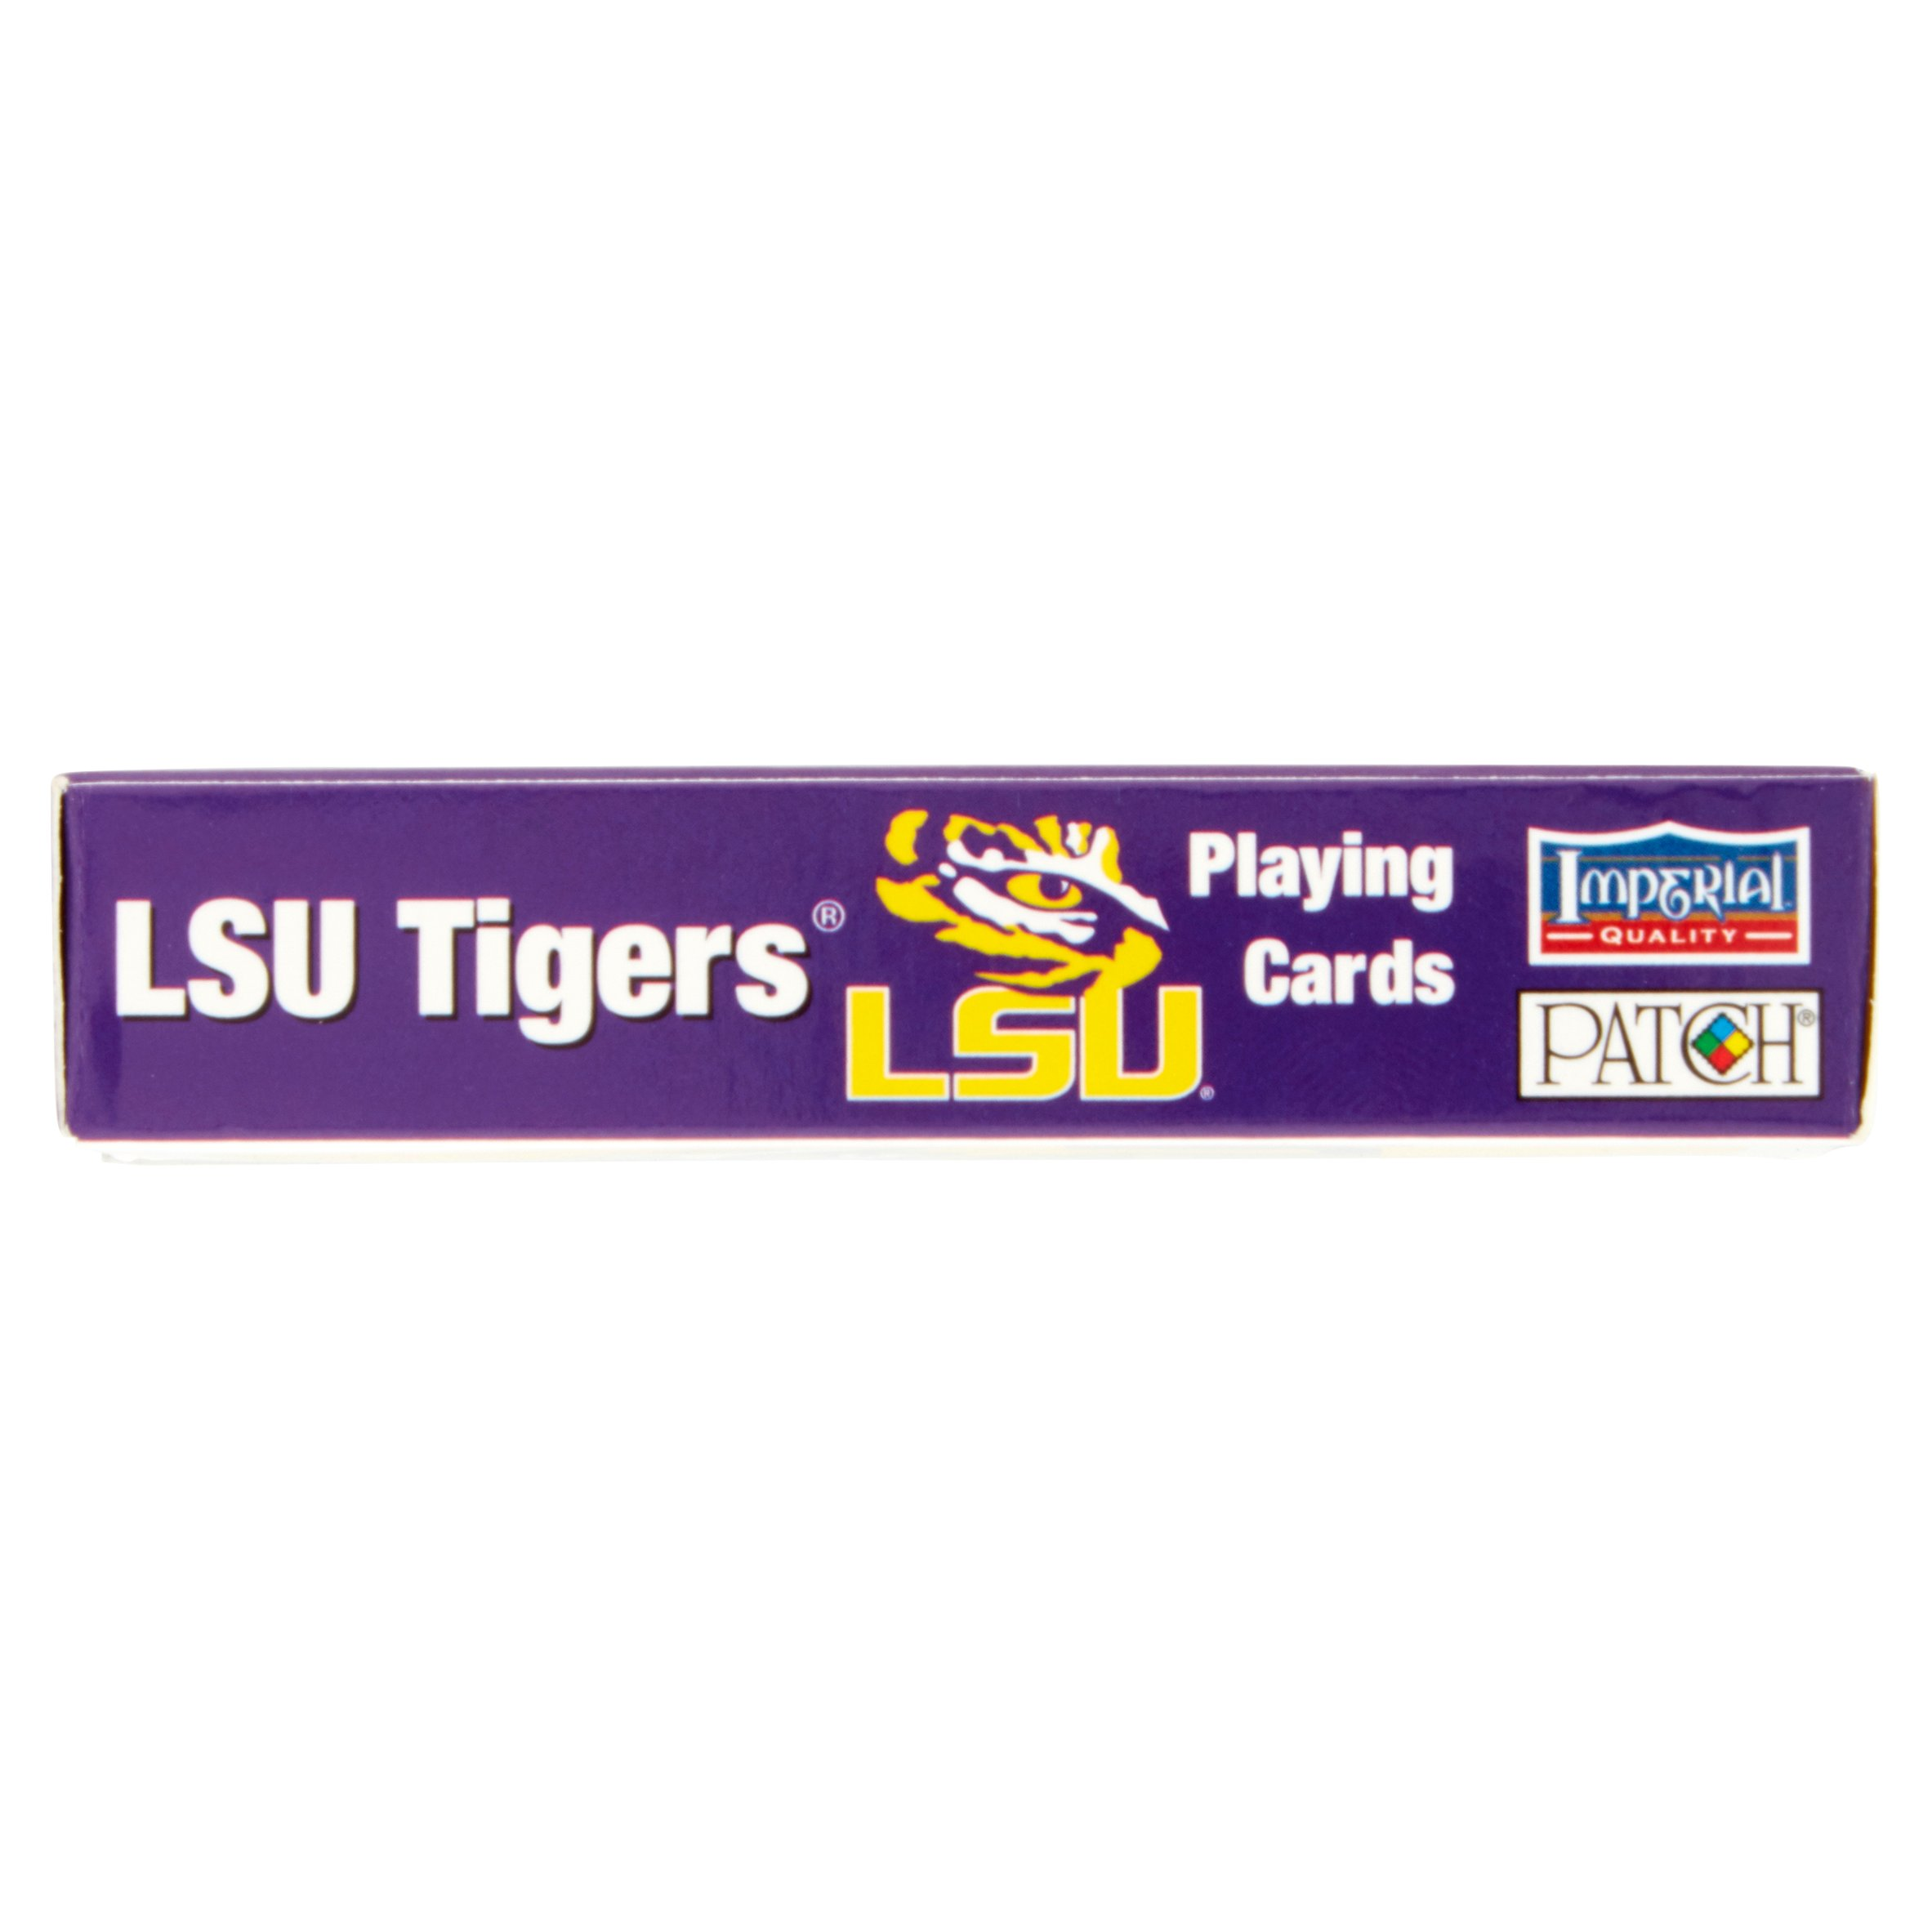 LSU Tigers Playing Cards - Walmart.com